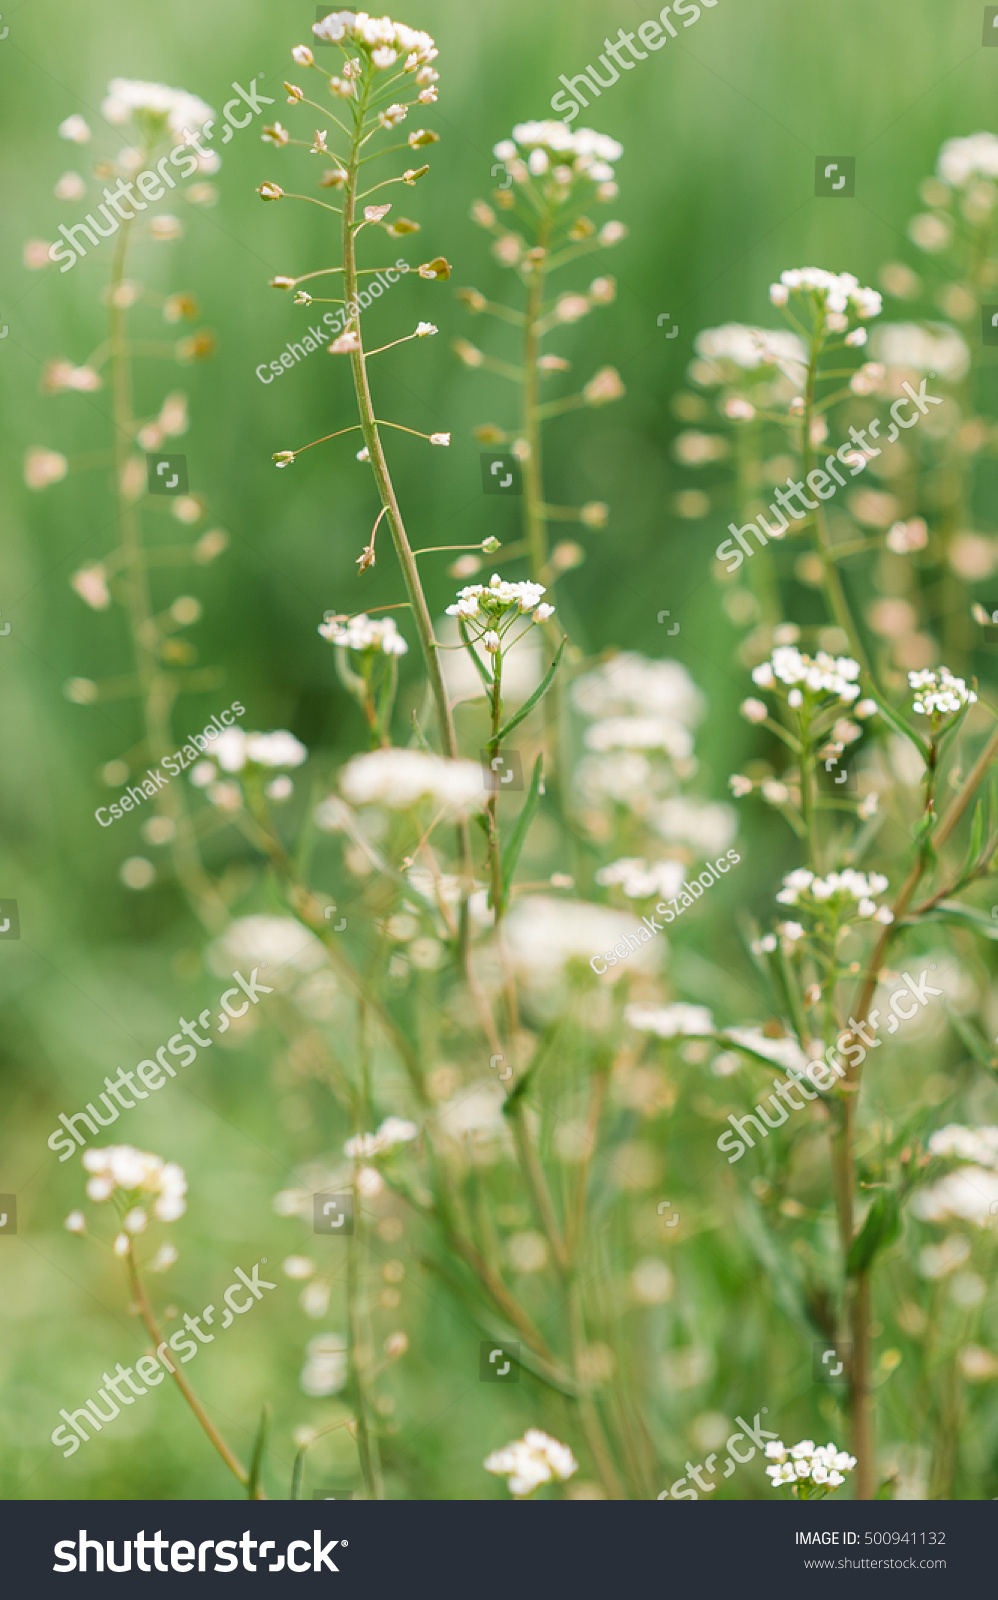 White Flower Weed In Grass Image Collections Fresh Lotus Flowers